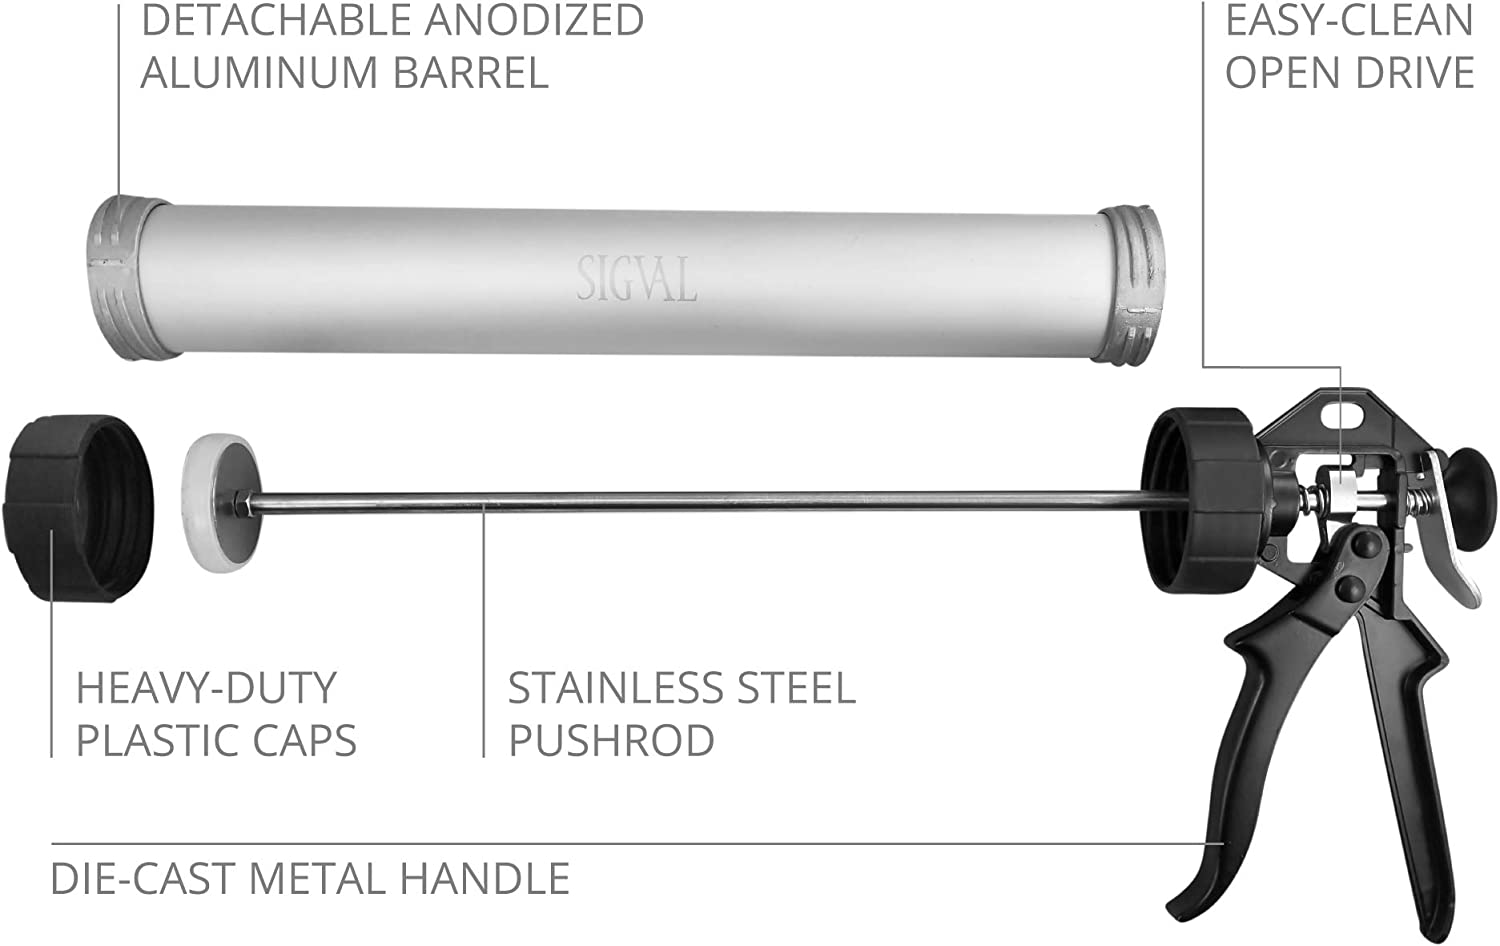 SIGVAL Jerky Gun Stainless Steel Nozzles Easy to Clean Aluminum Barrel Beefy 1.5 Pound Capacity